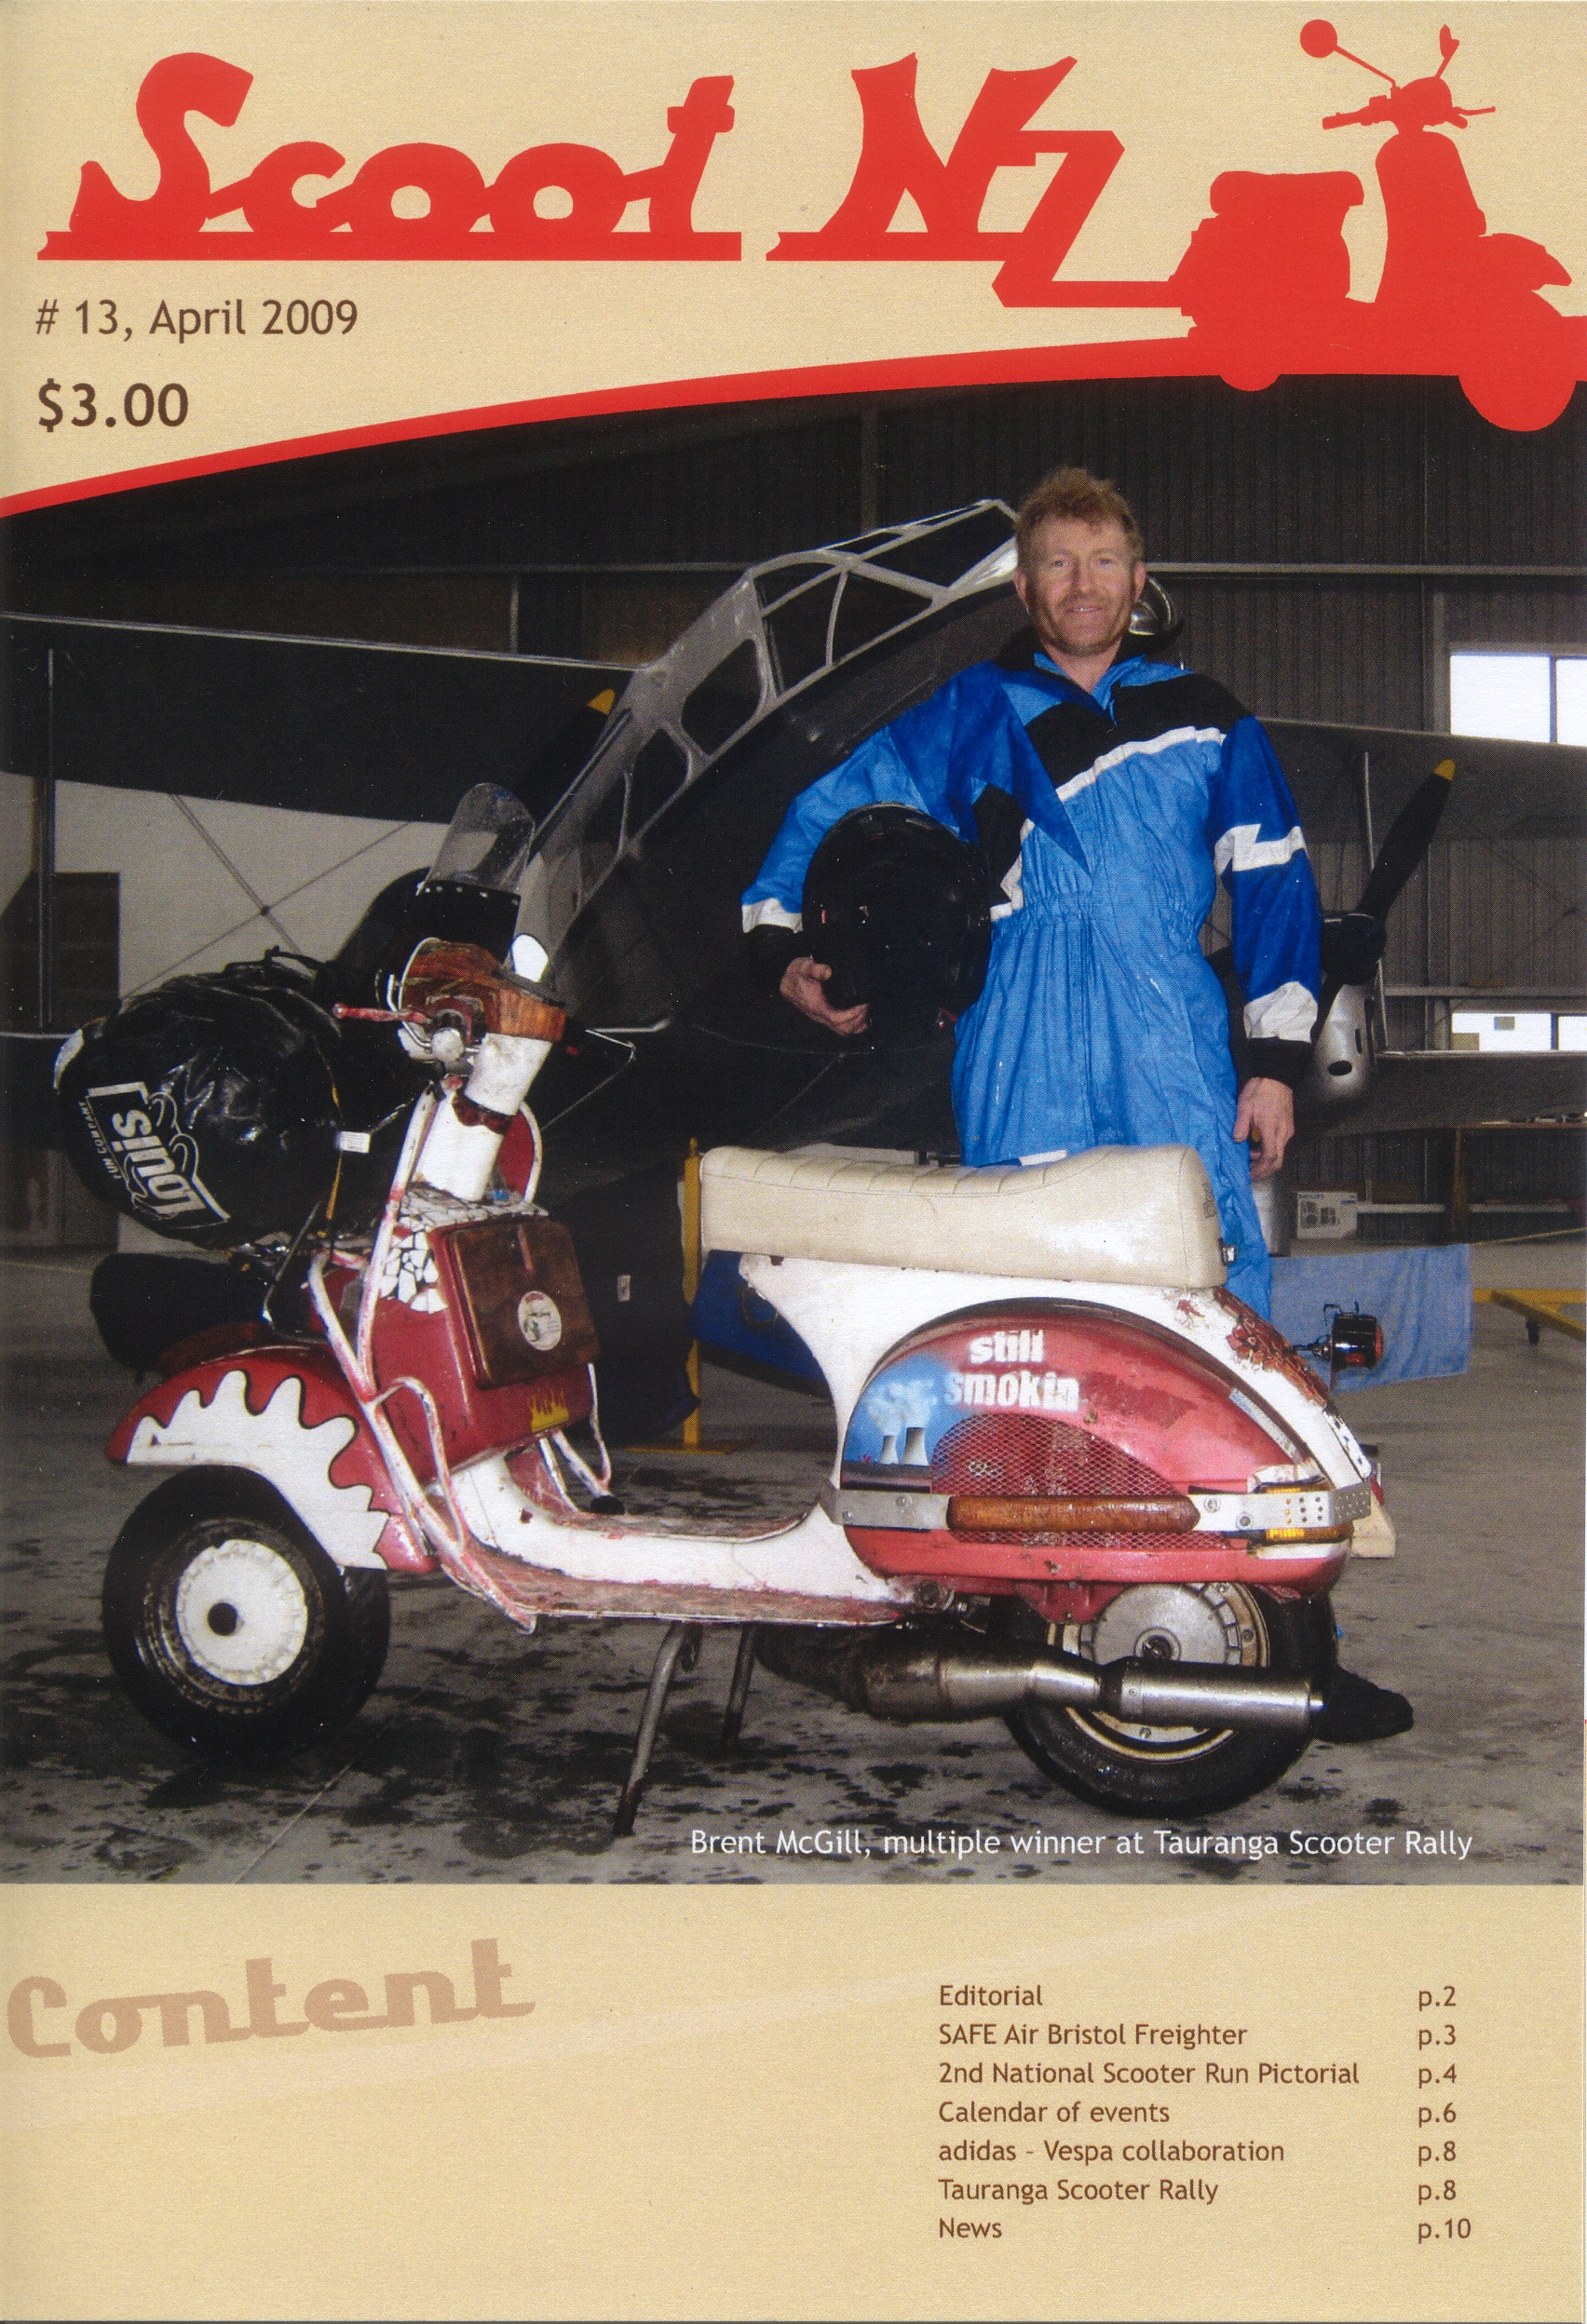 Scoot NZ April 2009 cover